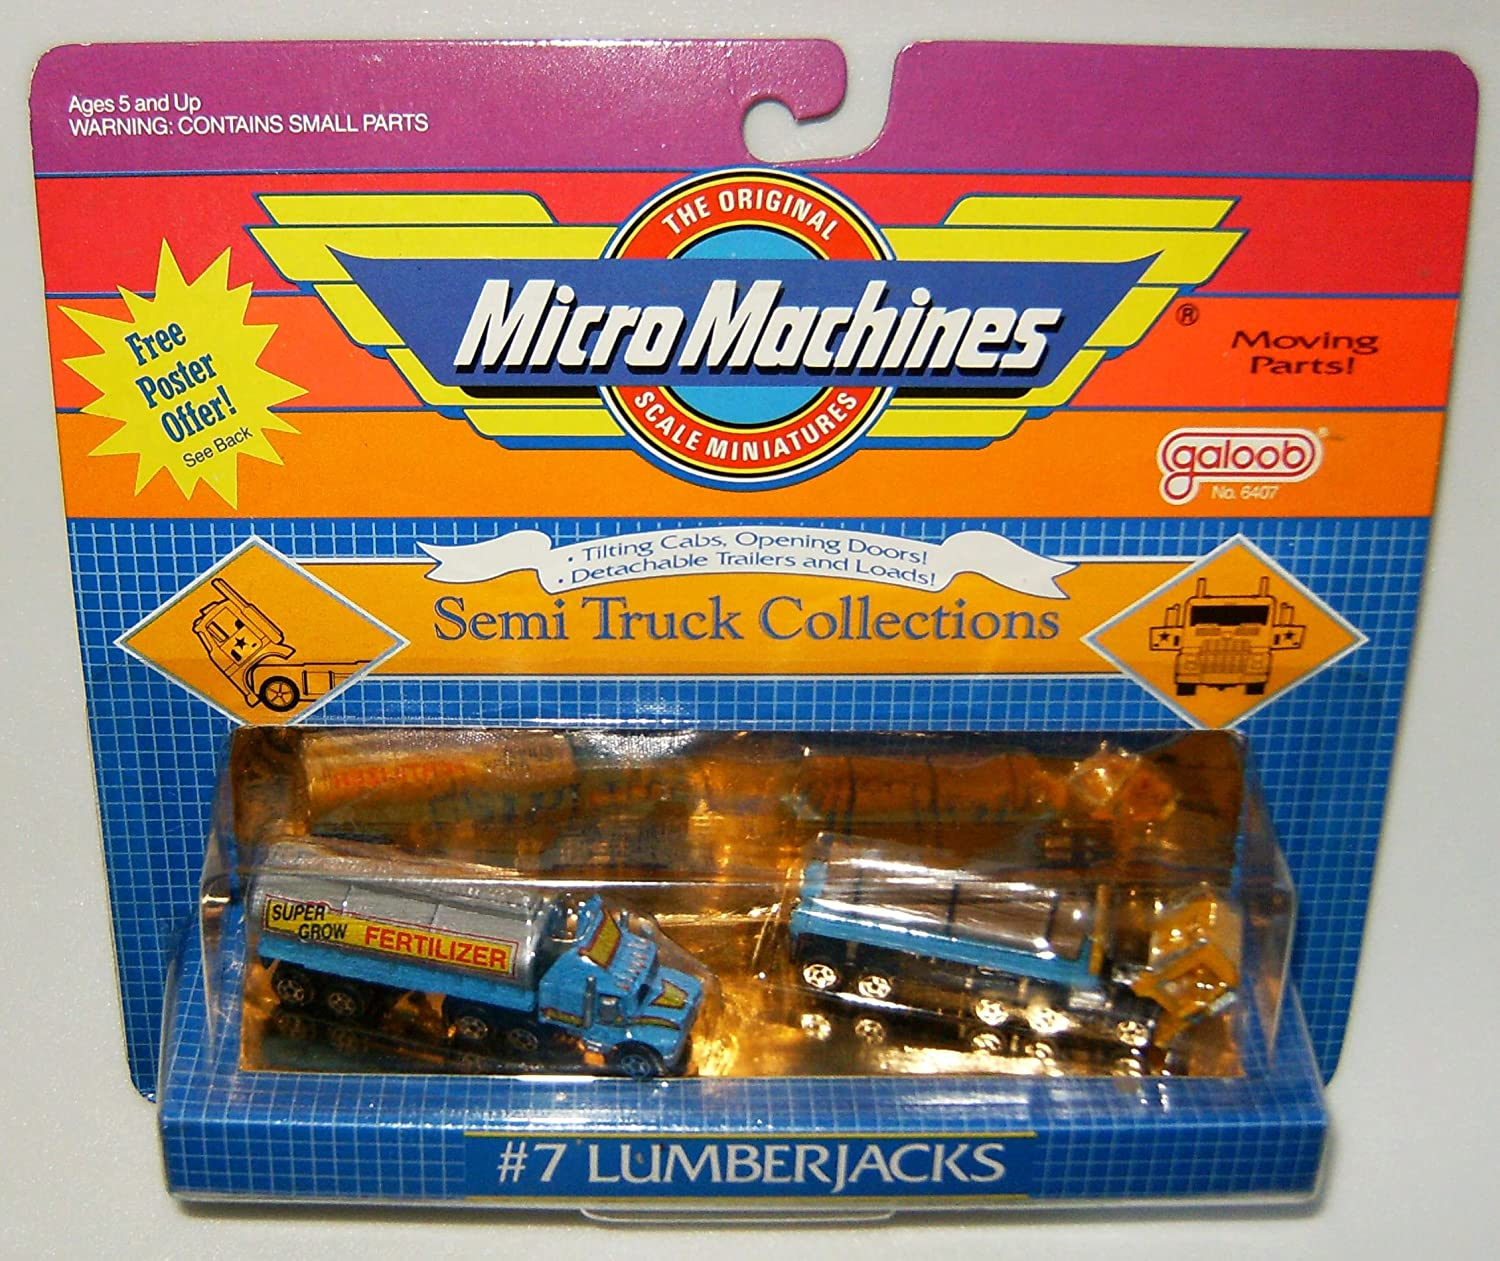 1988 Micro Machines 7 Lumberjacks Semi Truck Collection 1948 Ford Toys Games